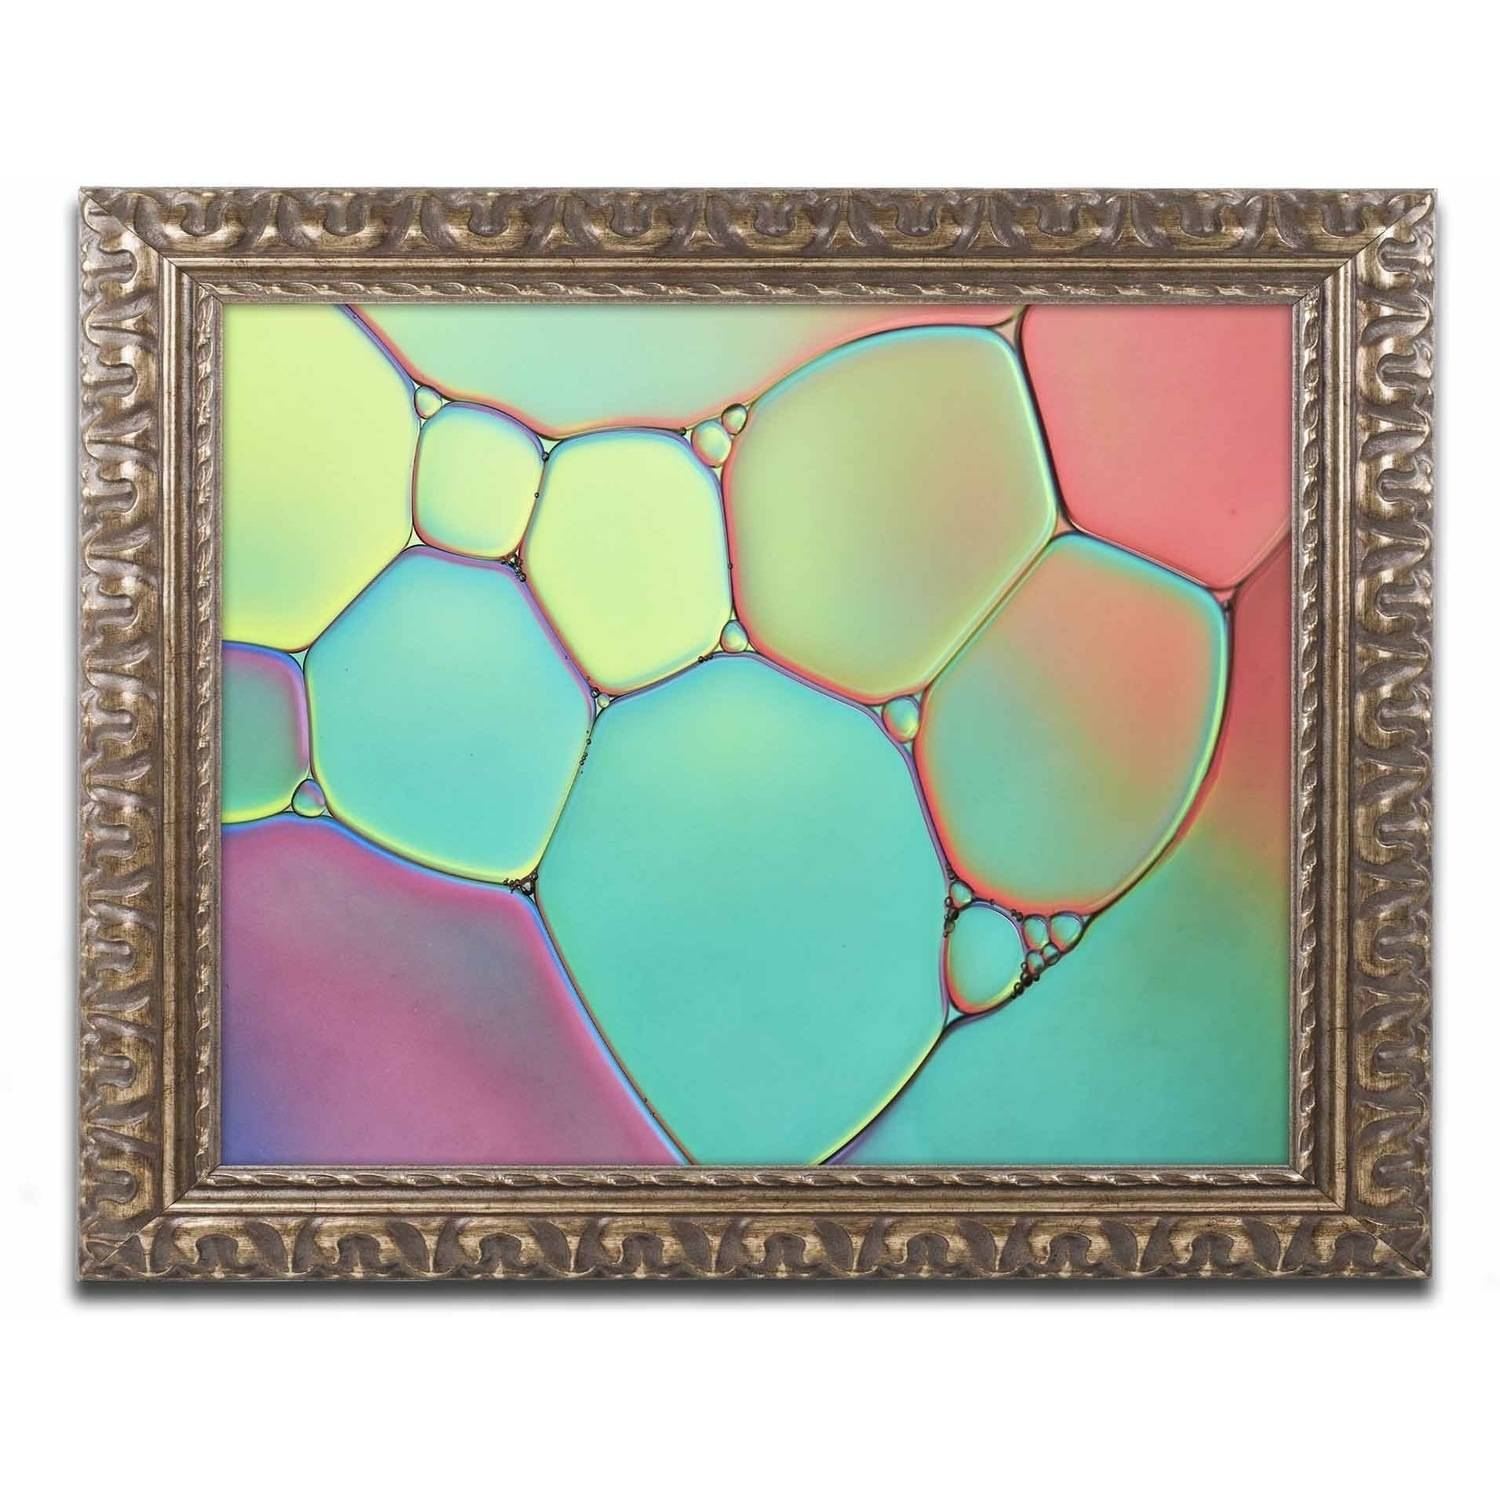 Trademark Fine Art 'Stained Glass III' Canvas Art by Cora Niele, Gold Ornate Frame